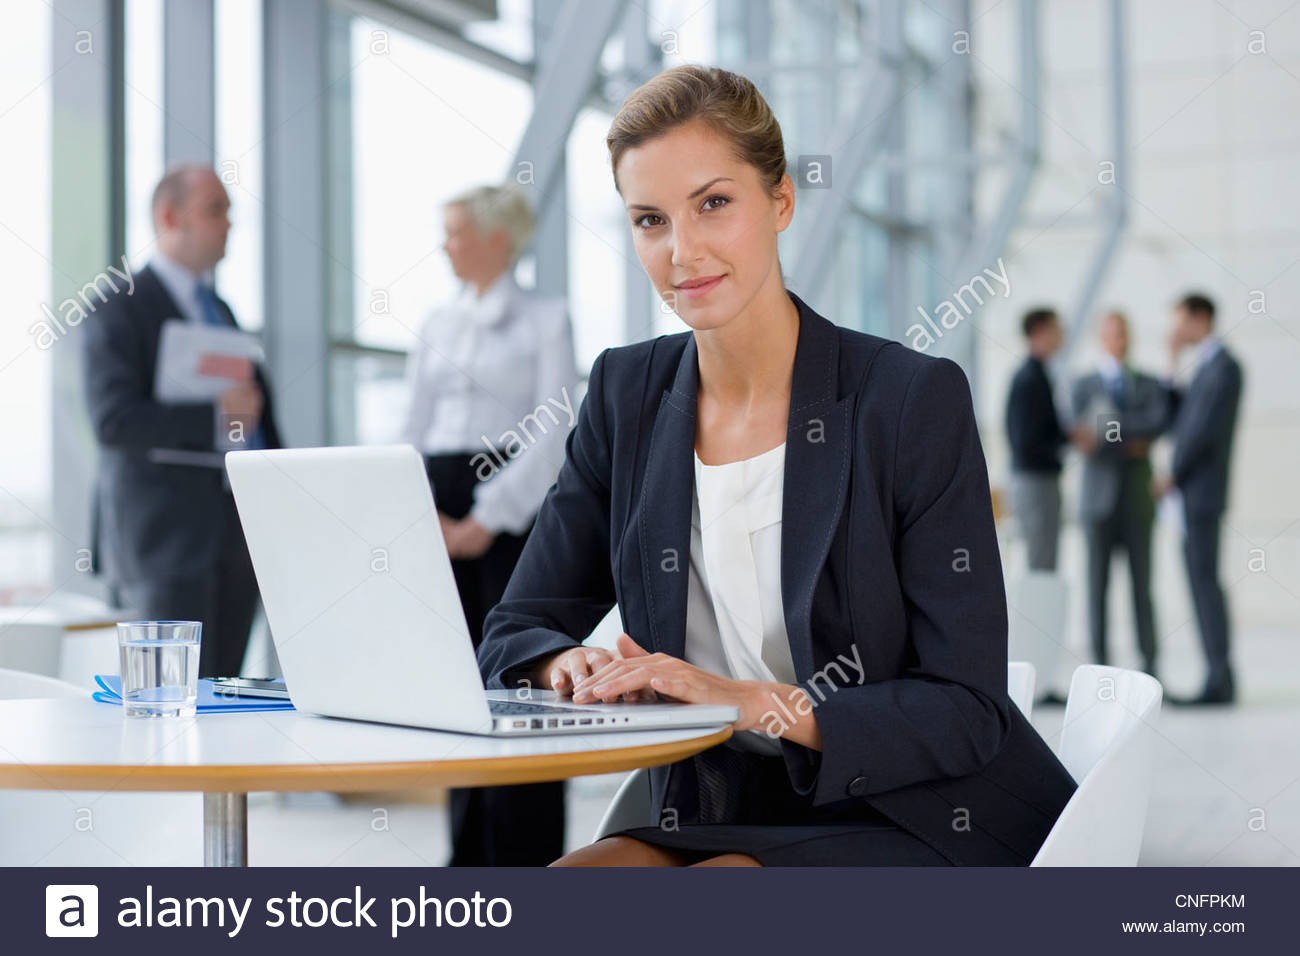 Portrait of confident businesswoman in suit sitting at laptop in lobby - Stock Image